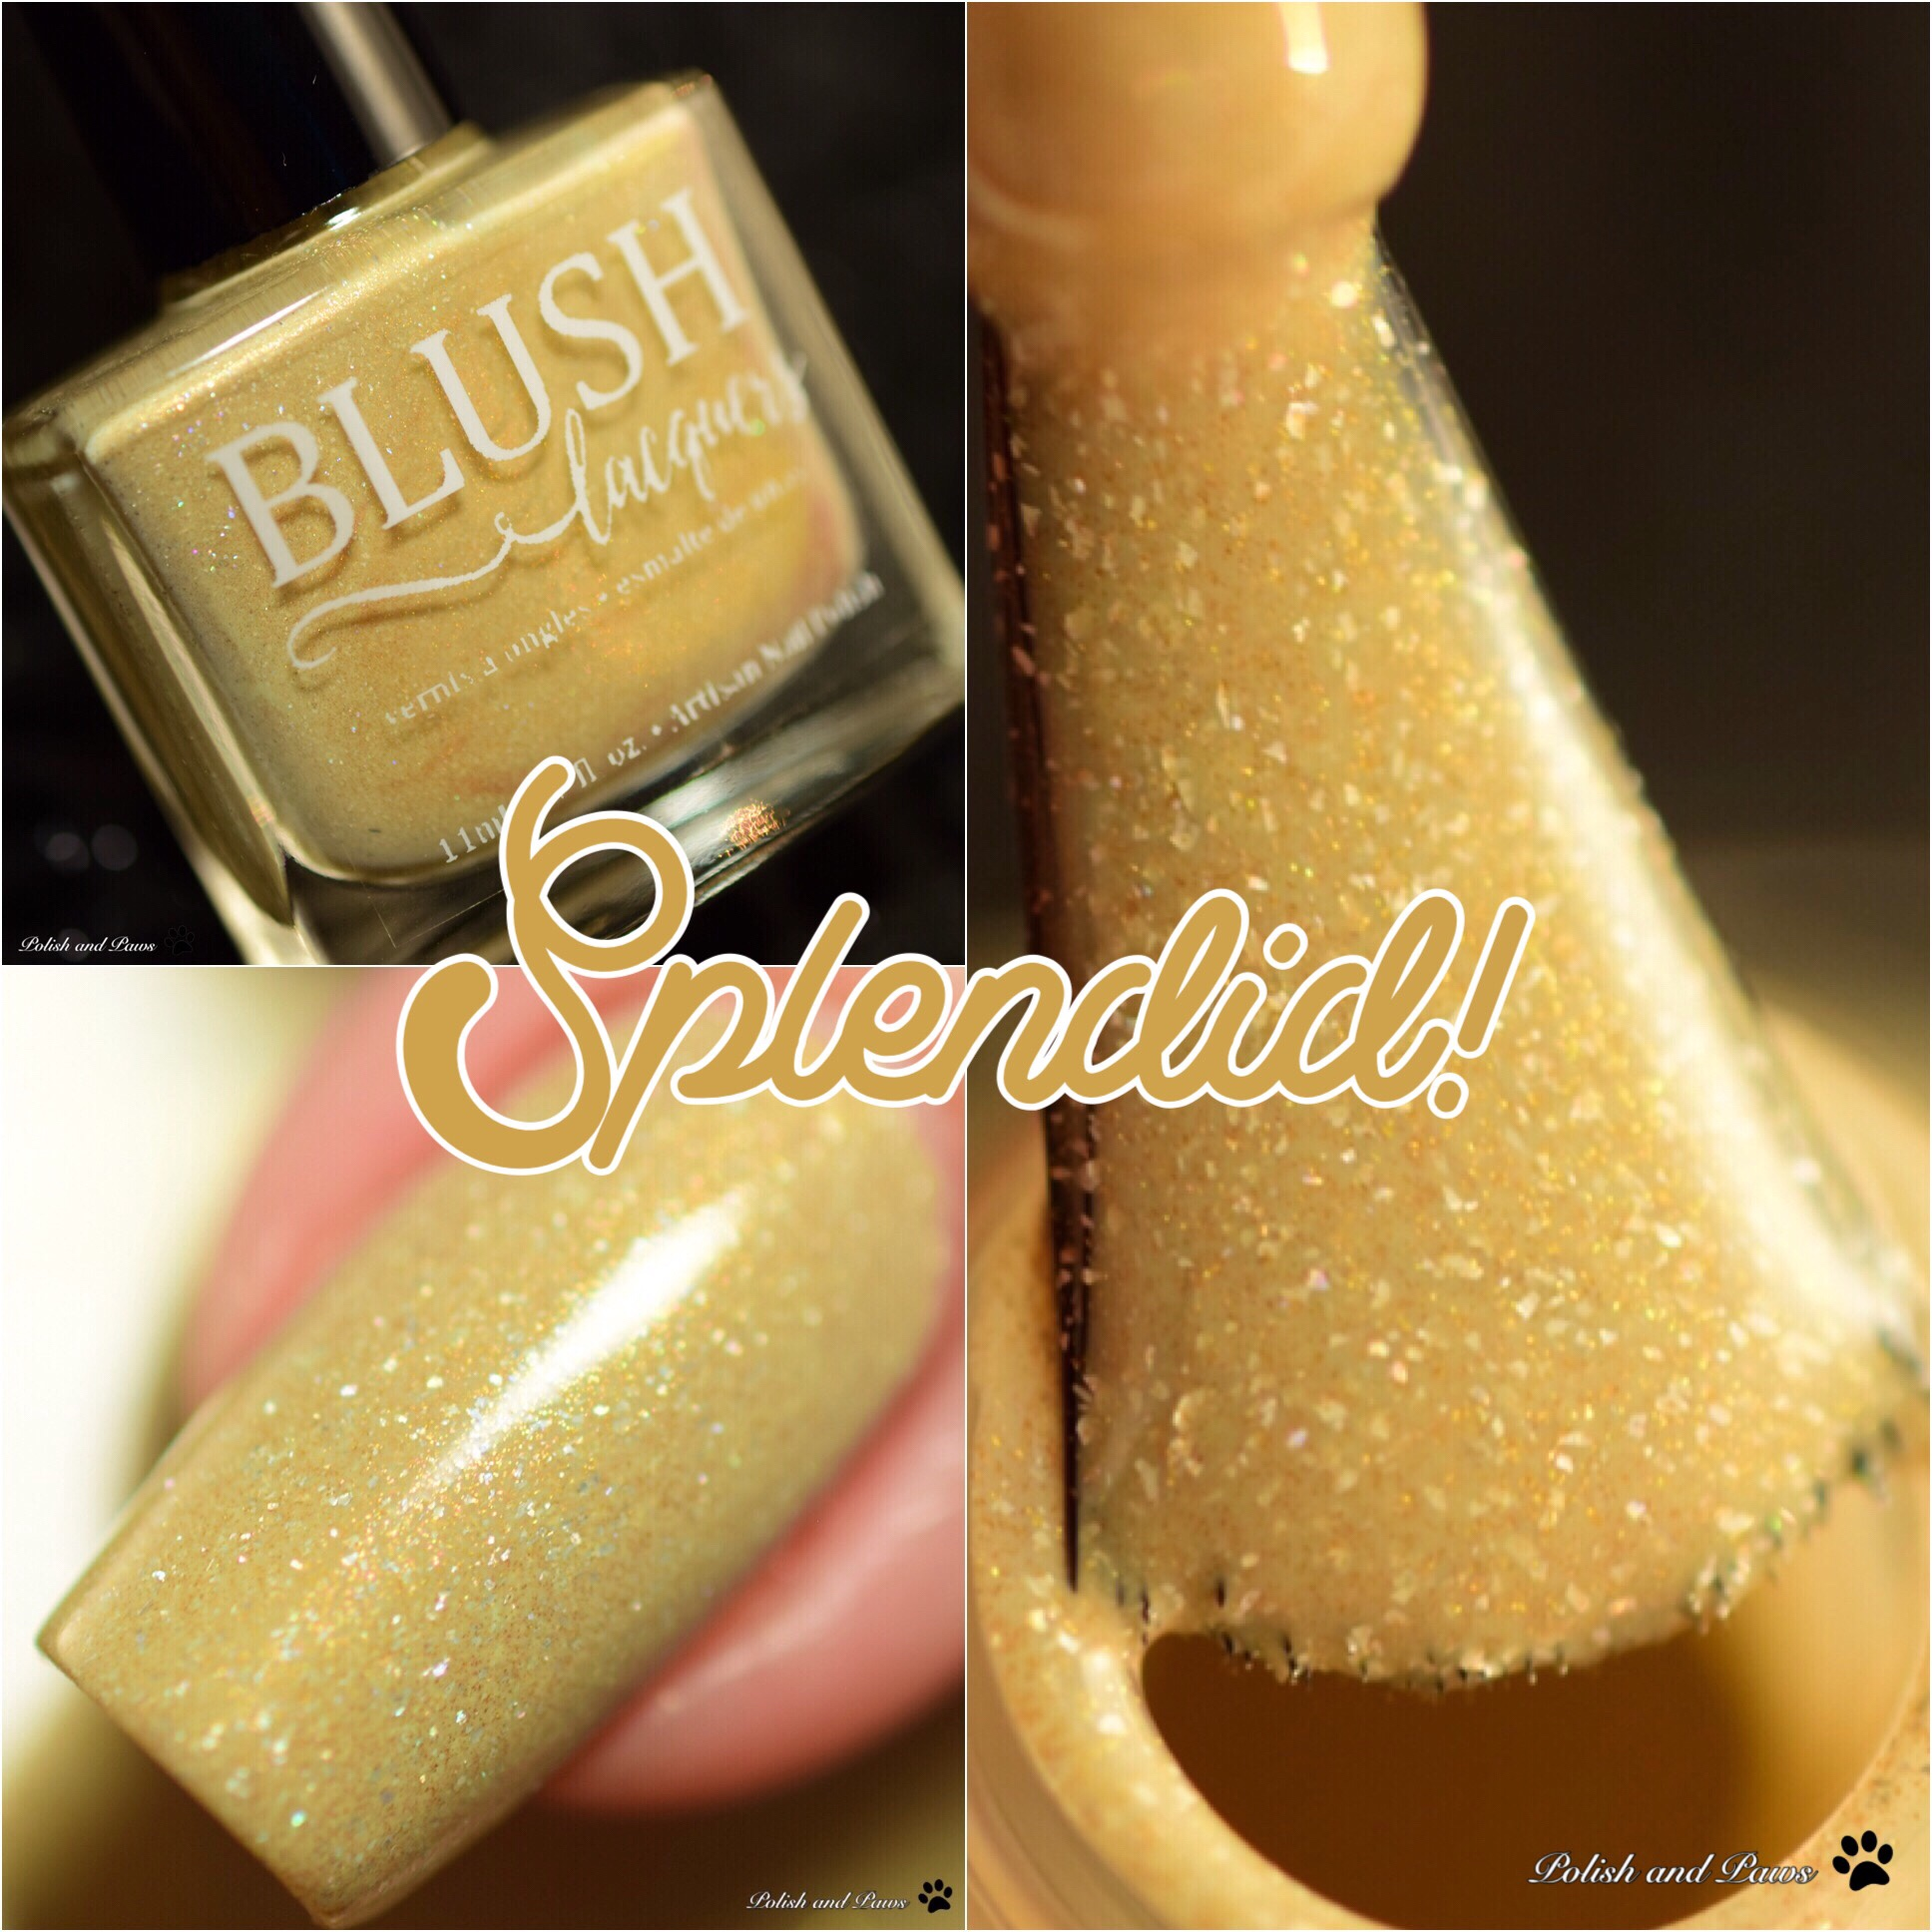 Blush Lacquers Splendid!